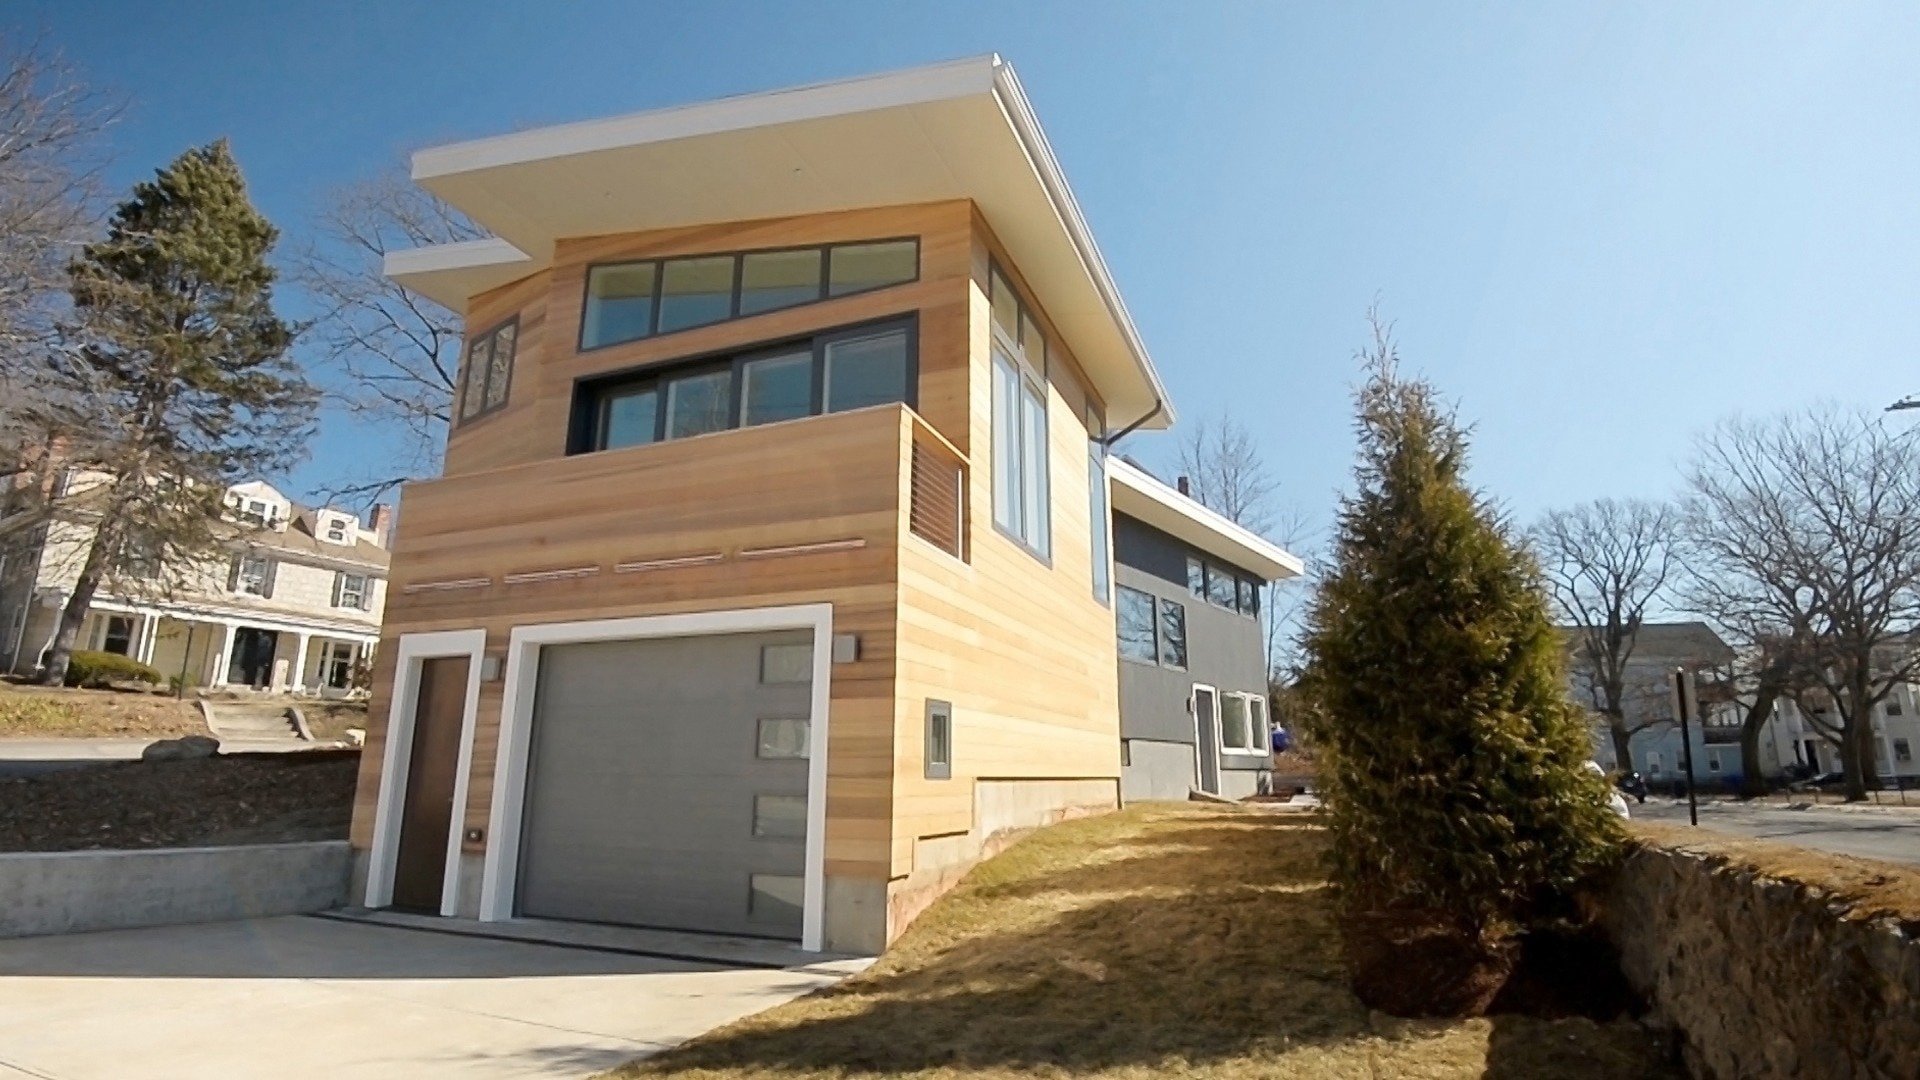 Brookline Mid-century Modern House: Taking Modern Back to the Future